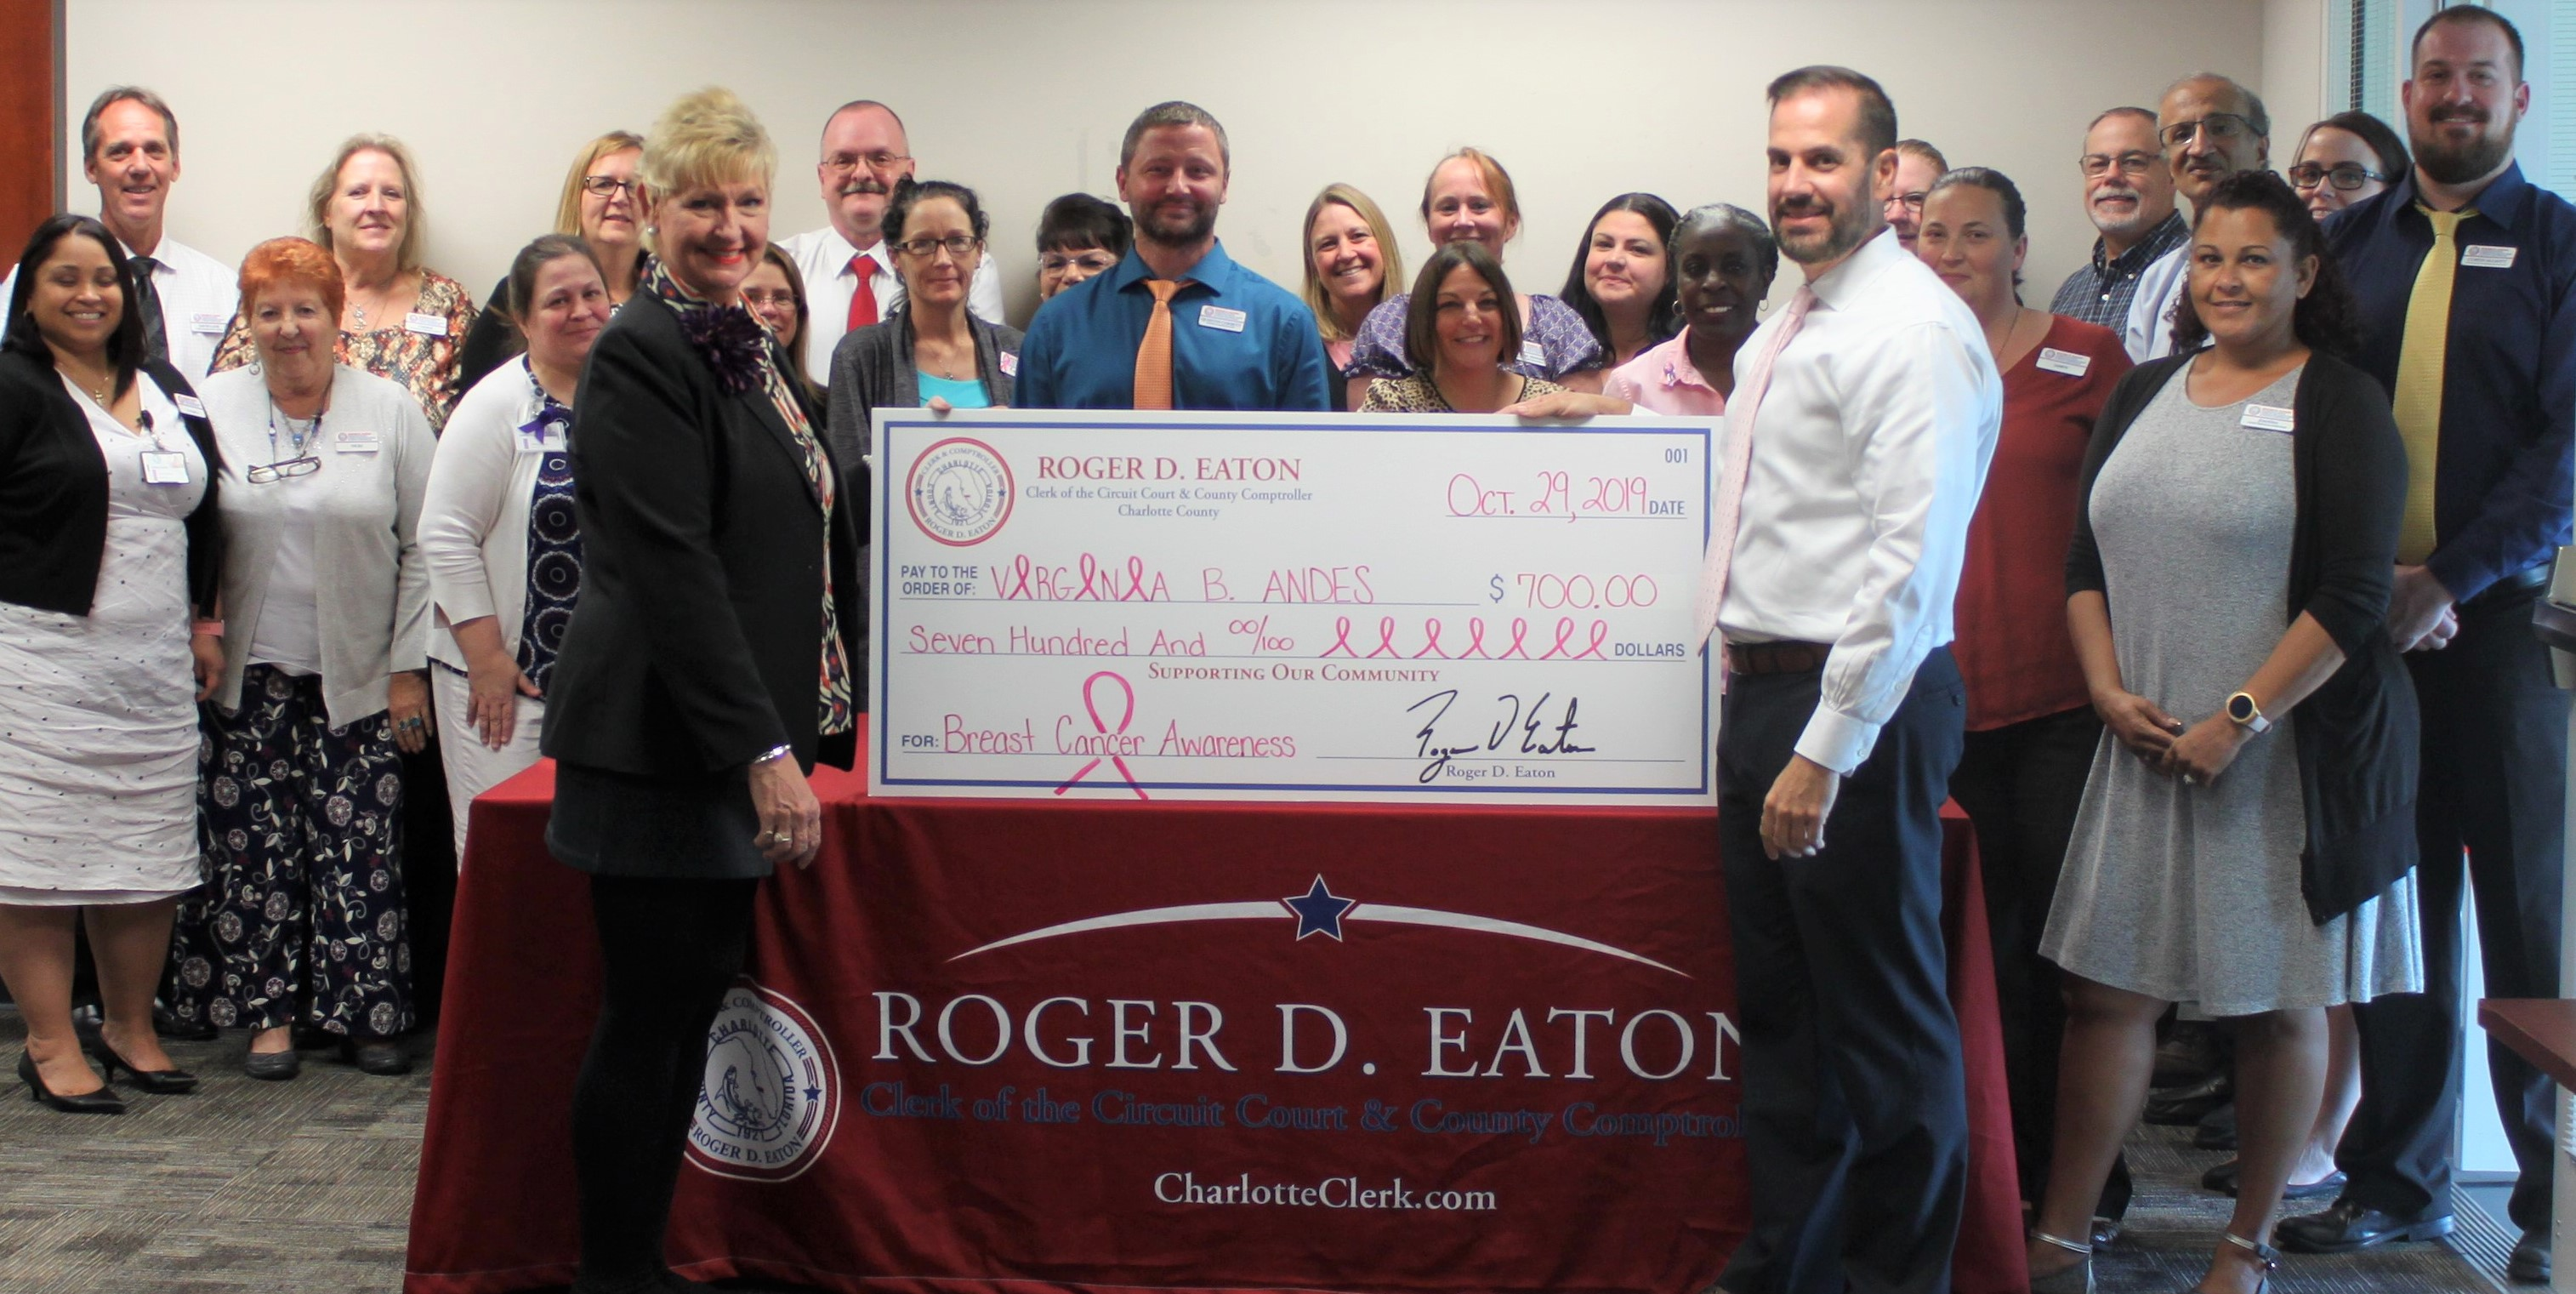 Roger D. Eaton, Clerk of the Circuit Court and County Comptroller and staff presents check to the Virginia B. Andes Volunteer Mammogram Program